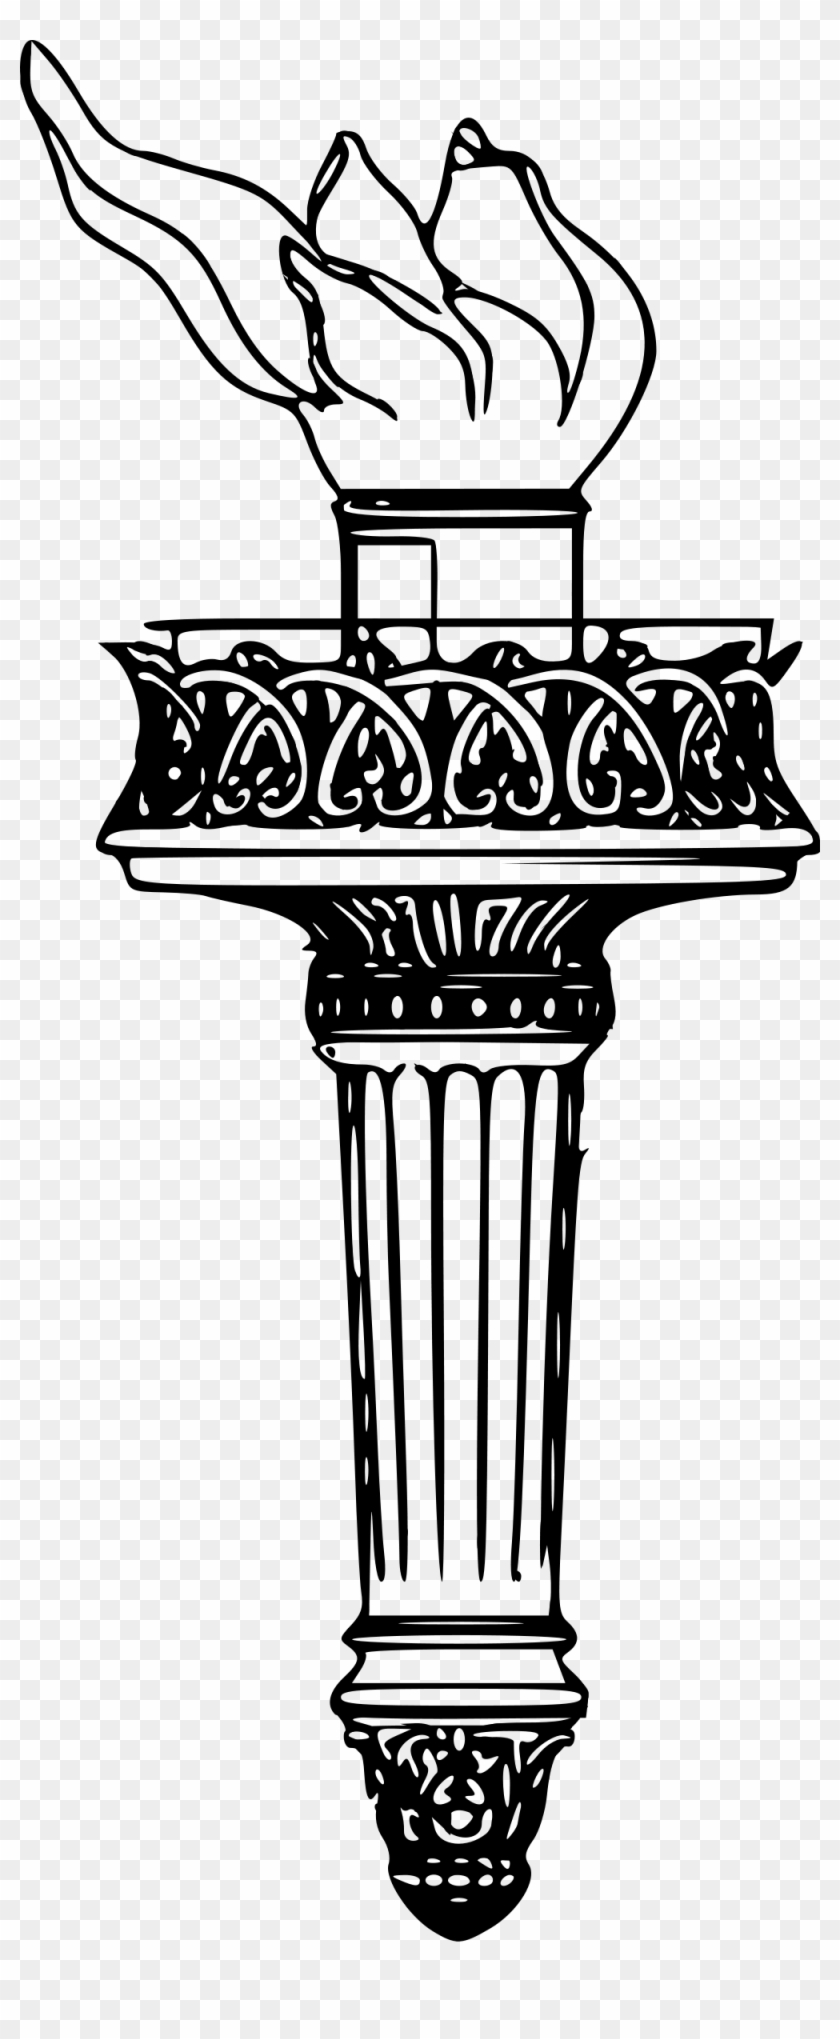 Open - Statue Of Liberty Torch Clipart #118109